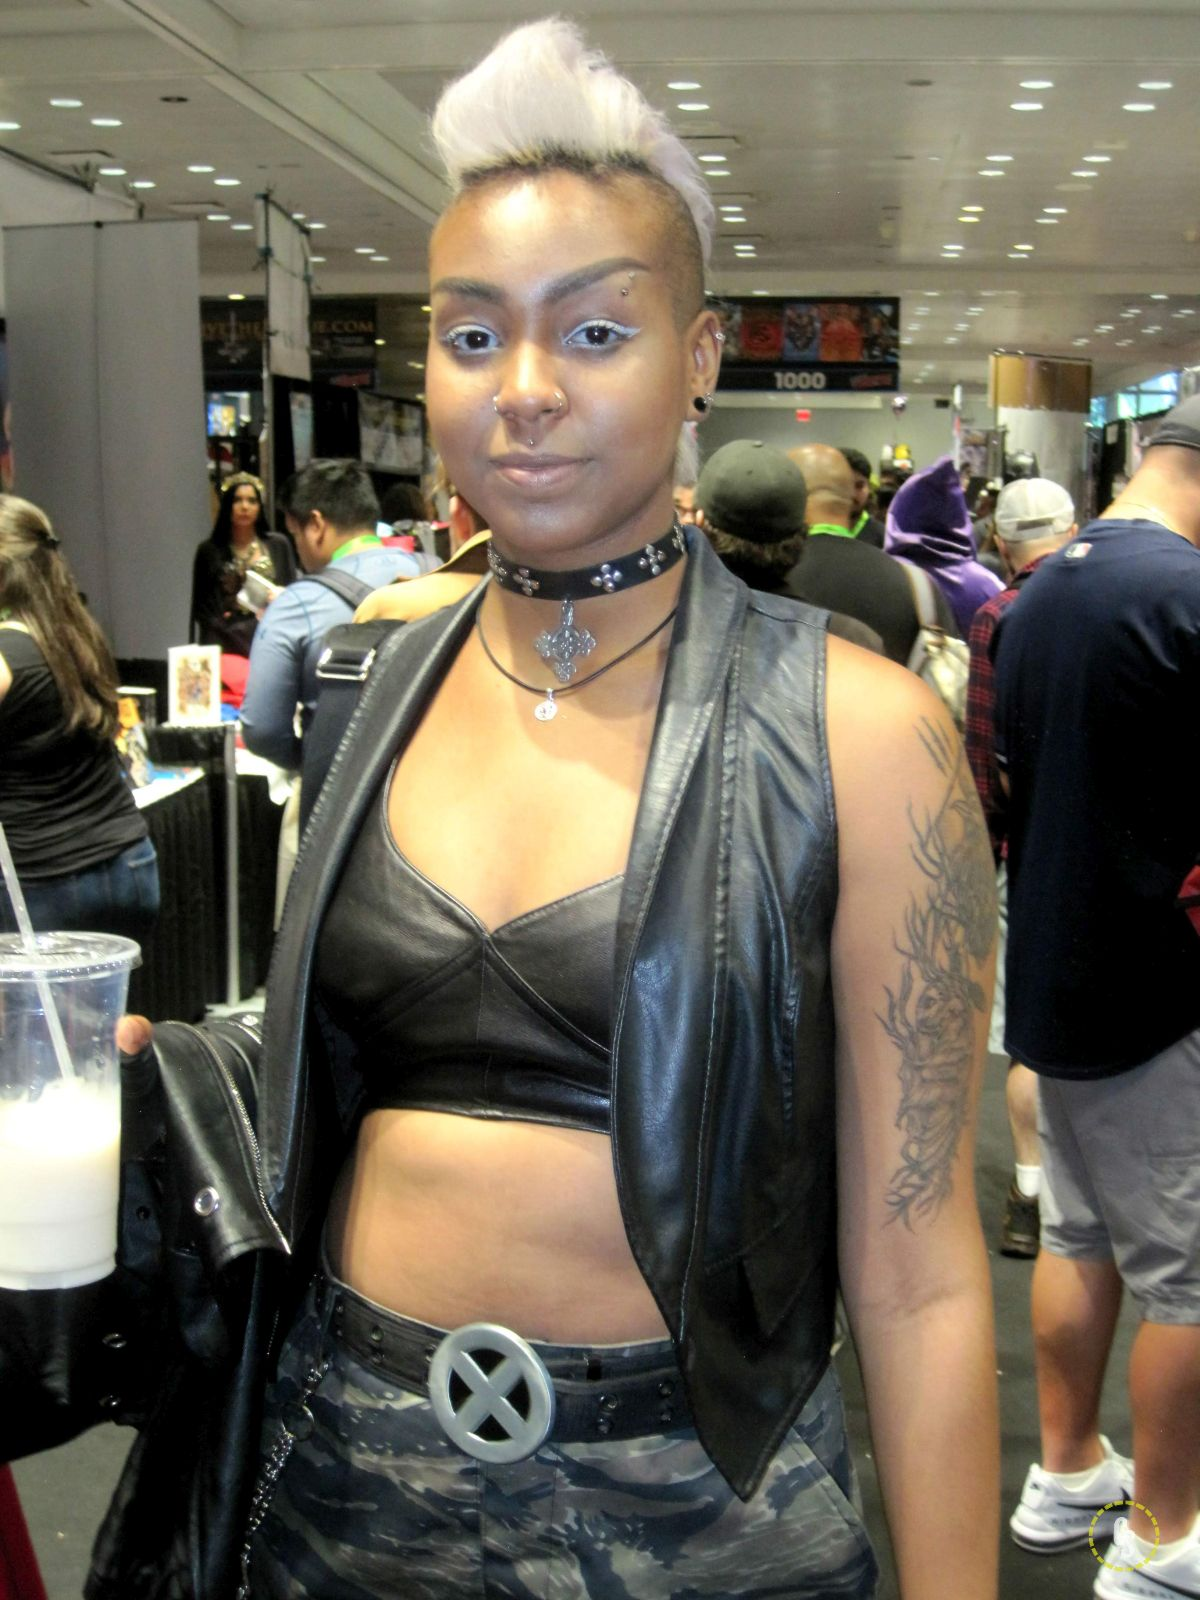 nycc182_038